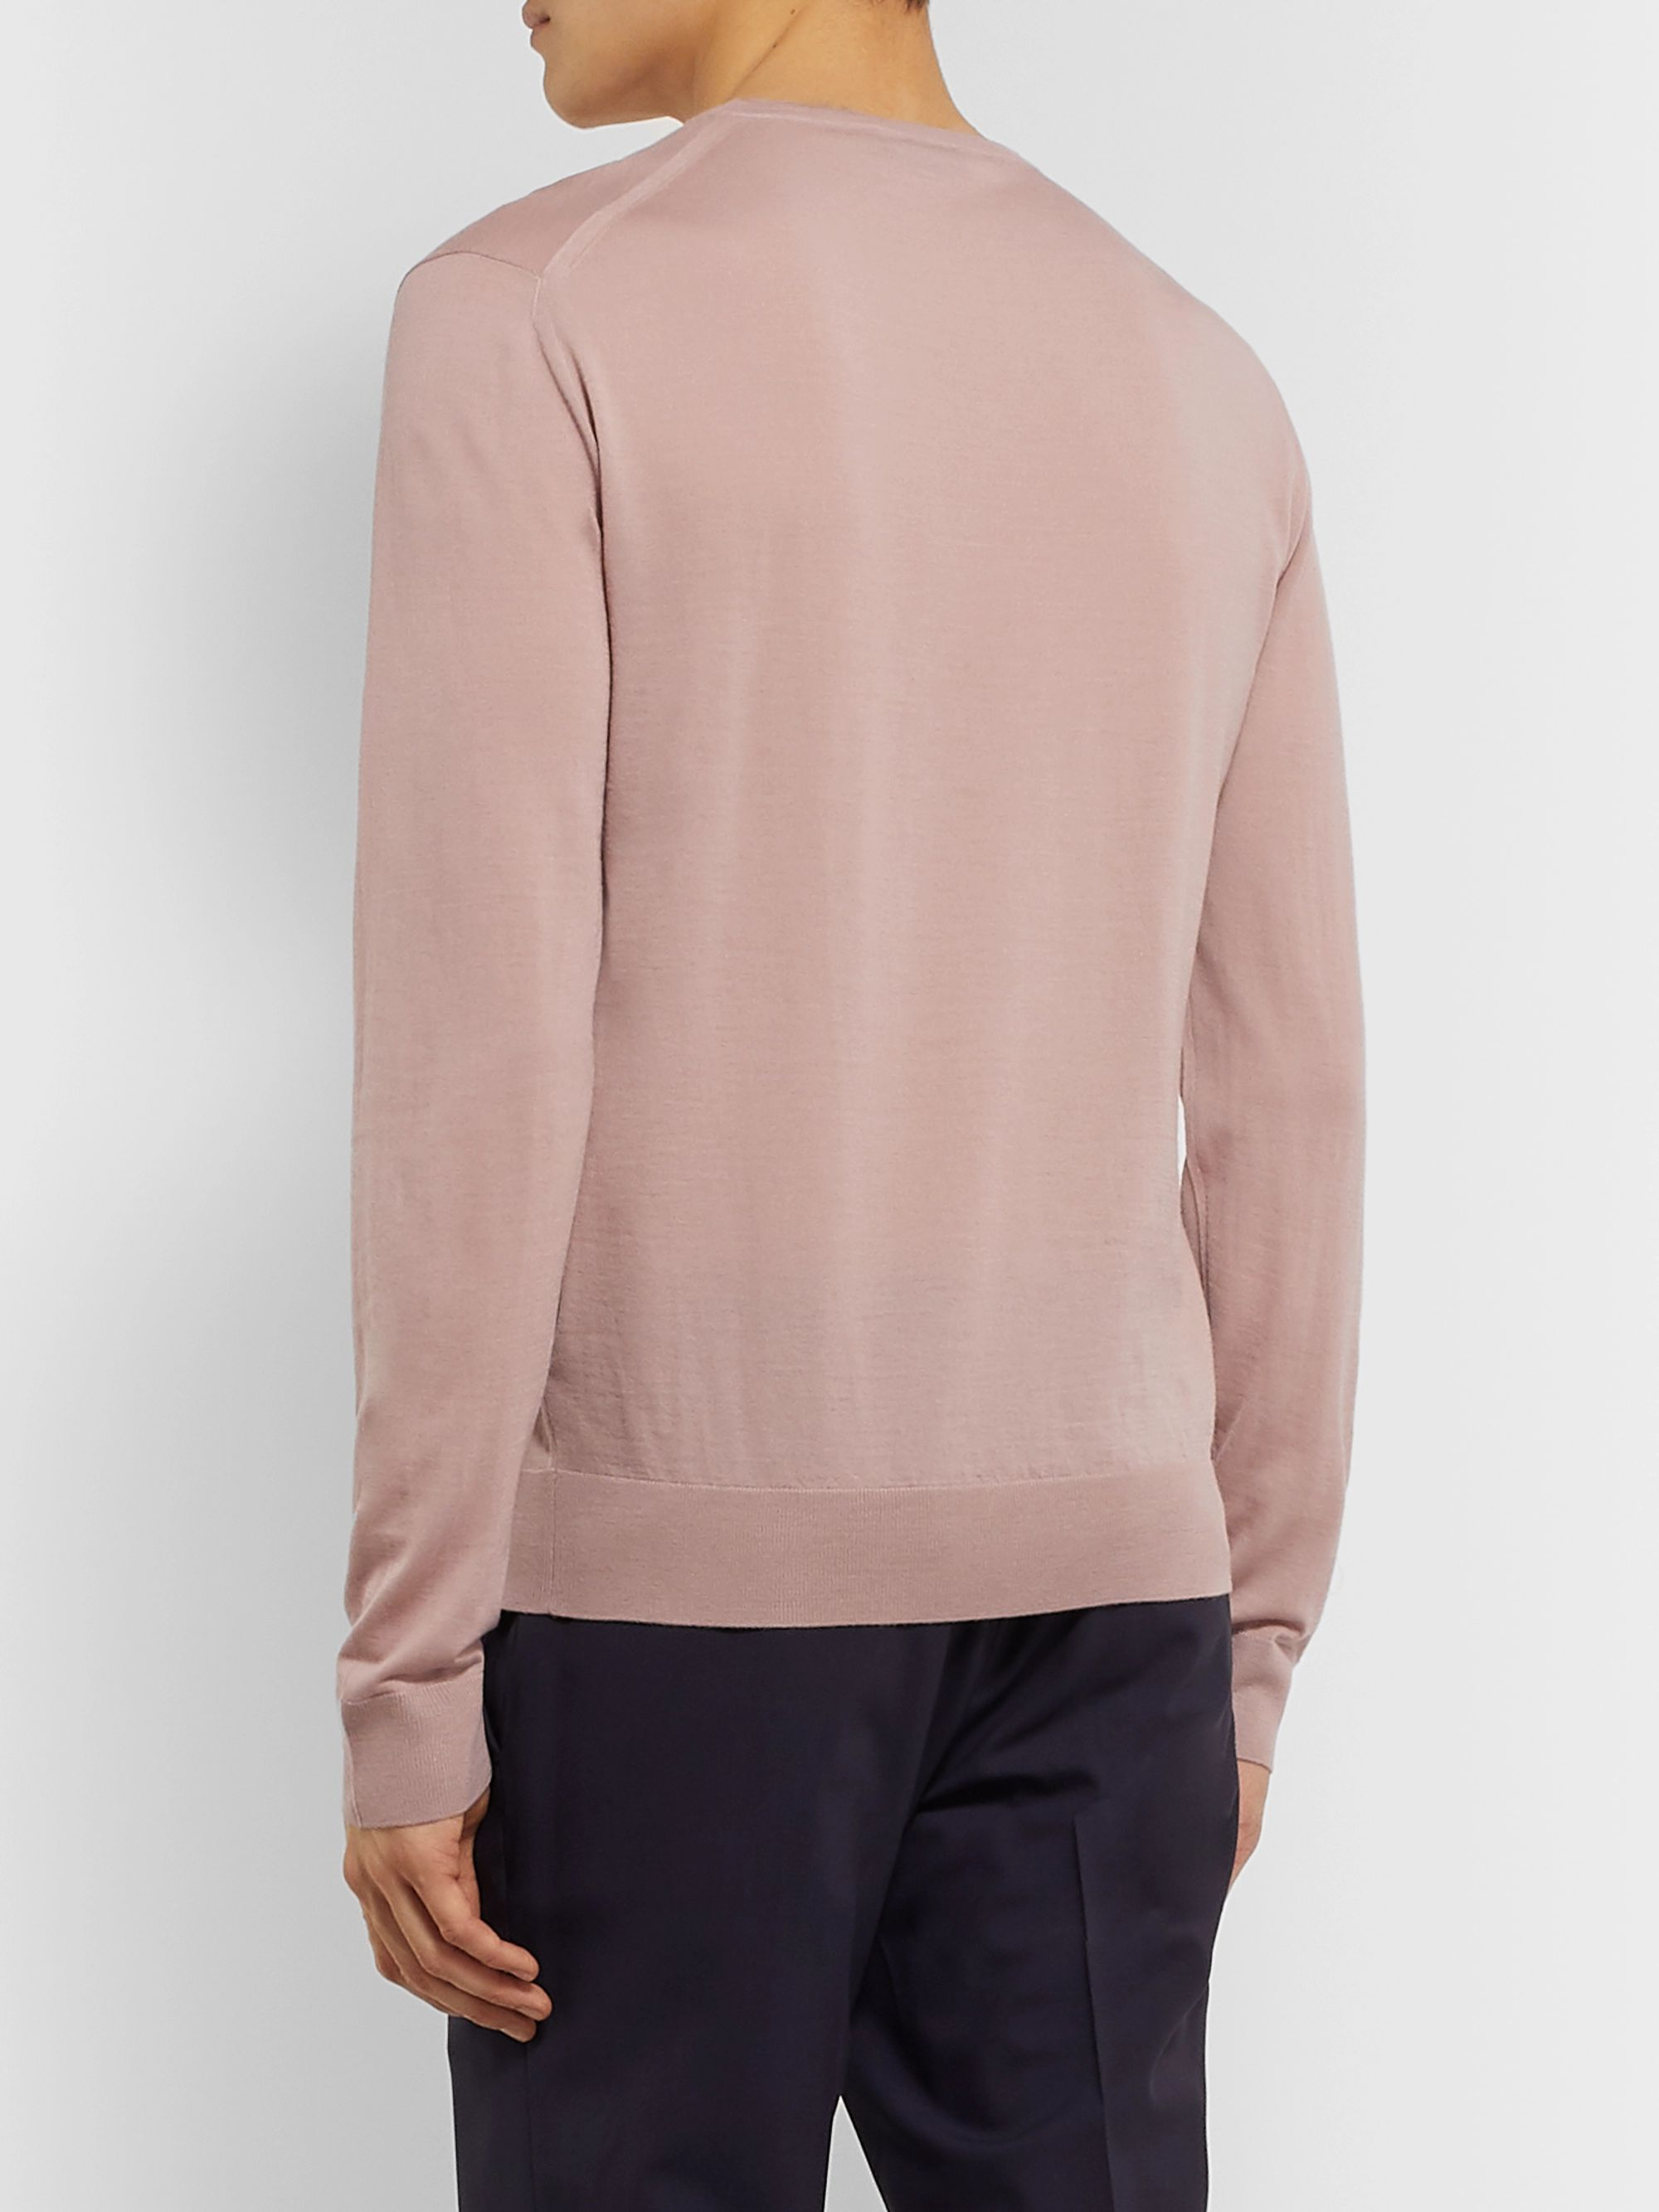 Prada Virgin Wool Sweater